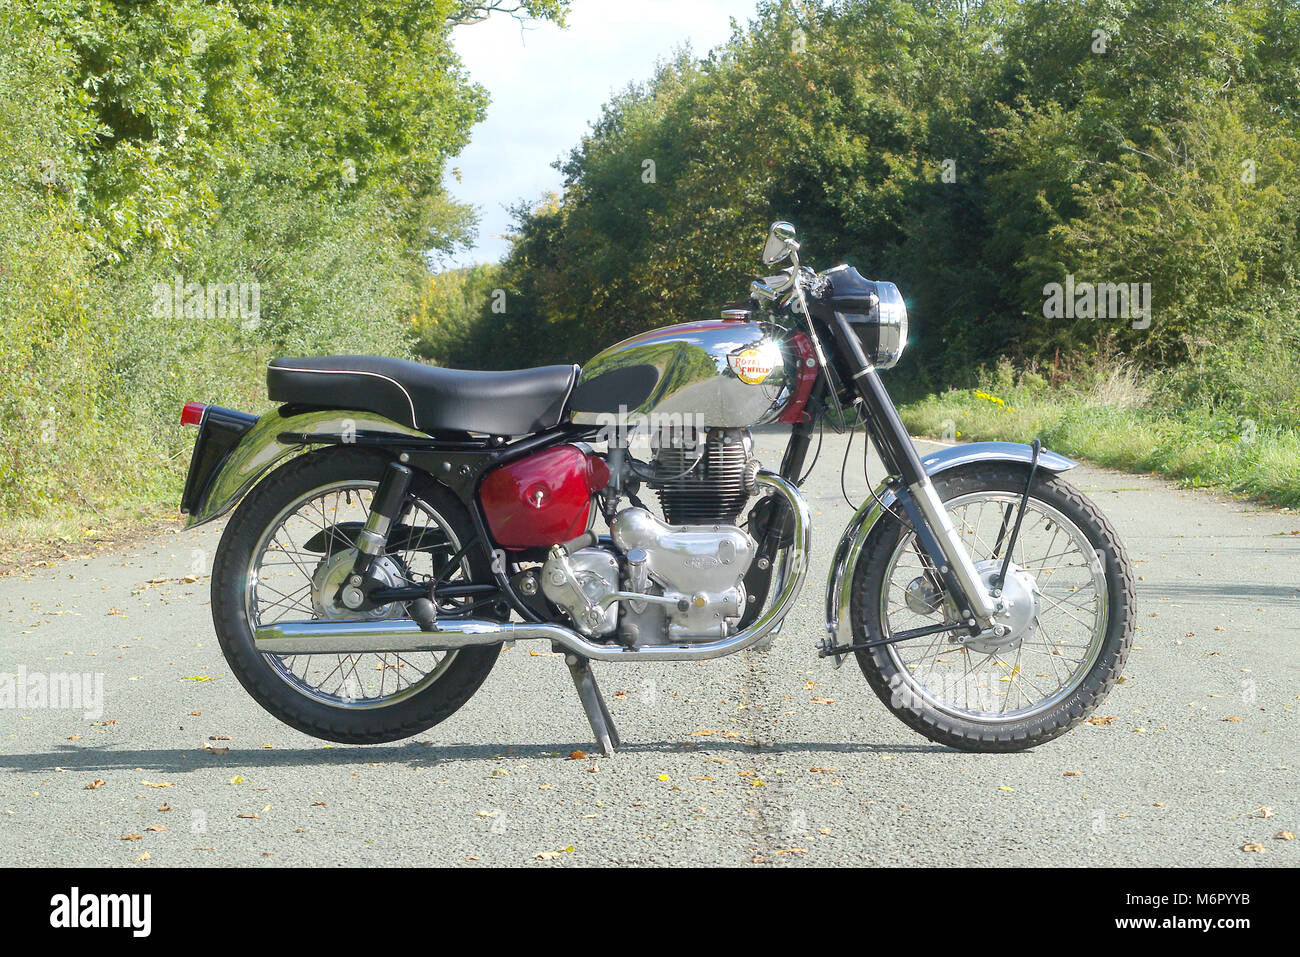 1960 Royal Enfield 700cc Constellation. - Stock Image